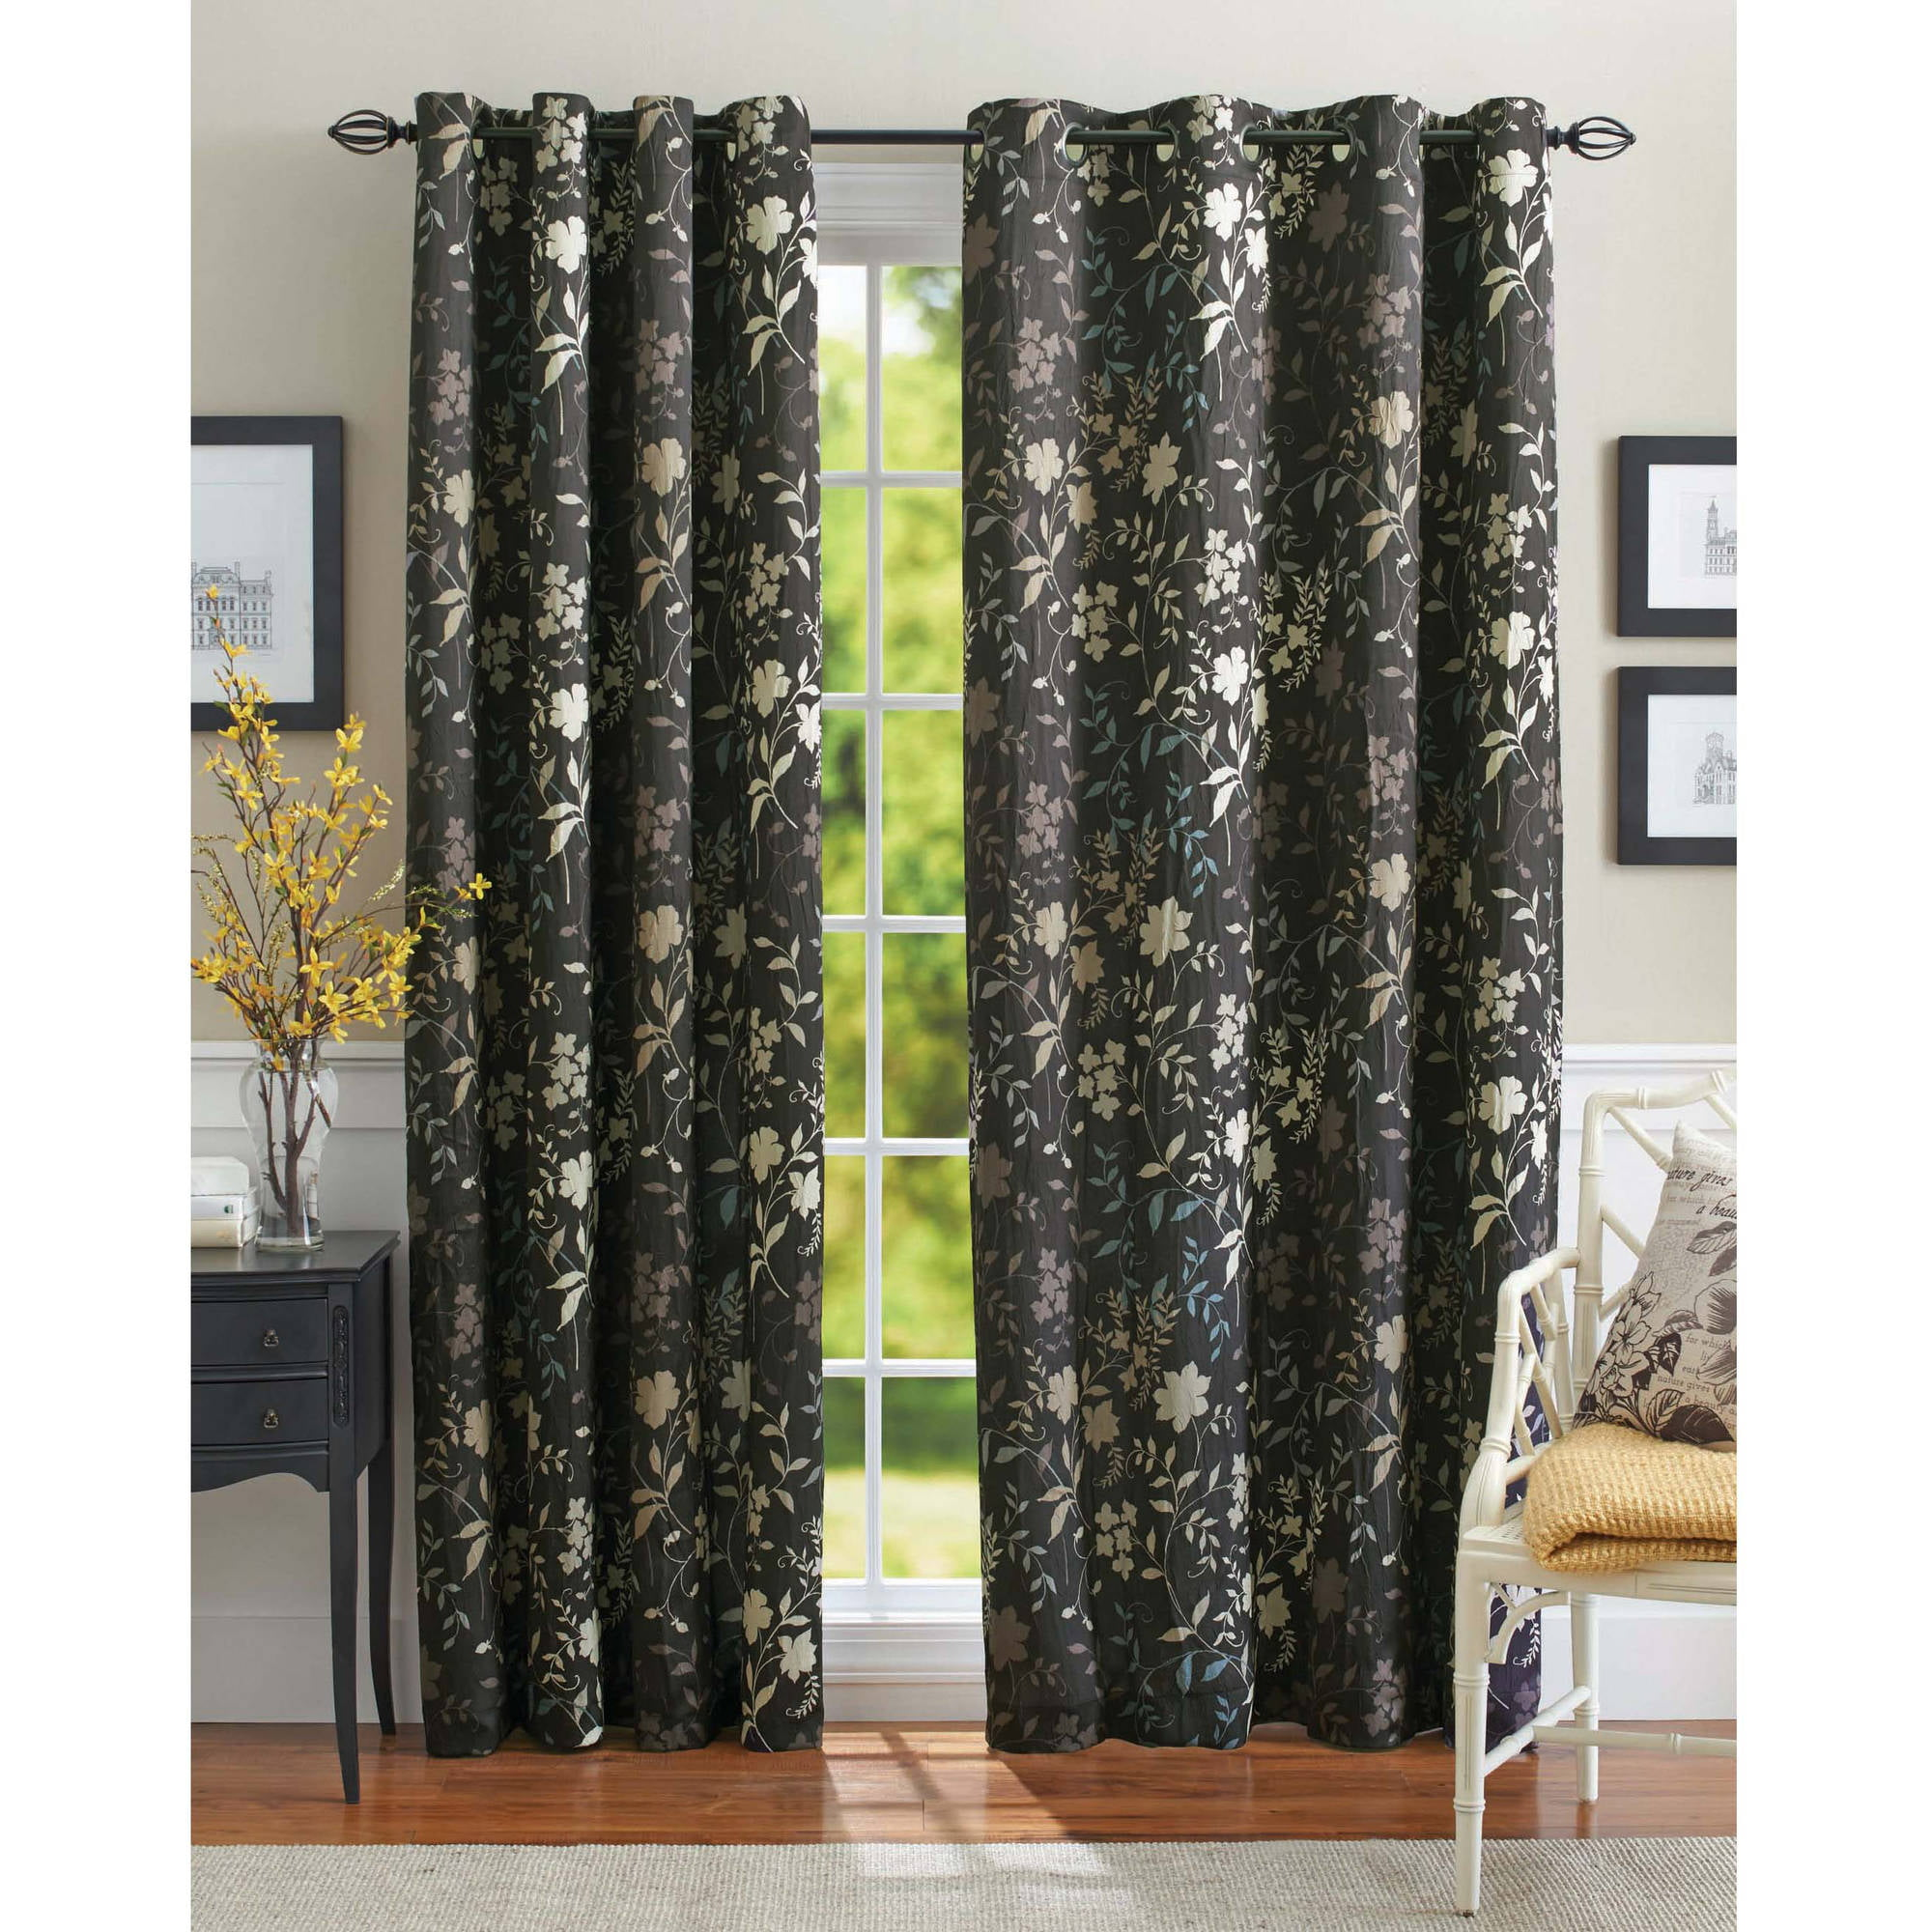 Walmart Curtains For Living Room Beauteous Delancey Metallic Print Sheer Grommet Window Panel  Walmart Inspiration Design